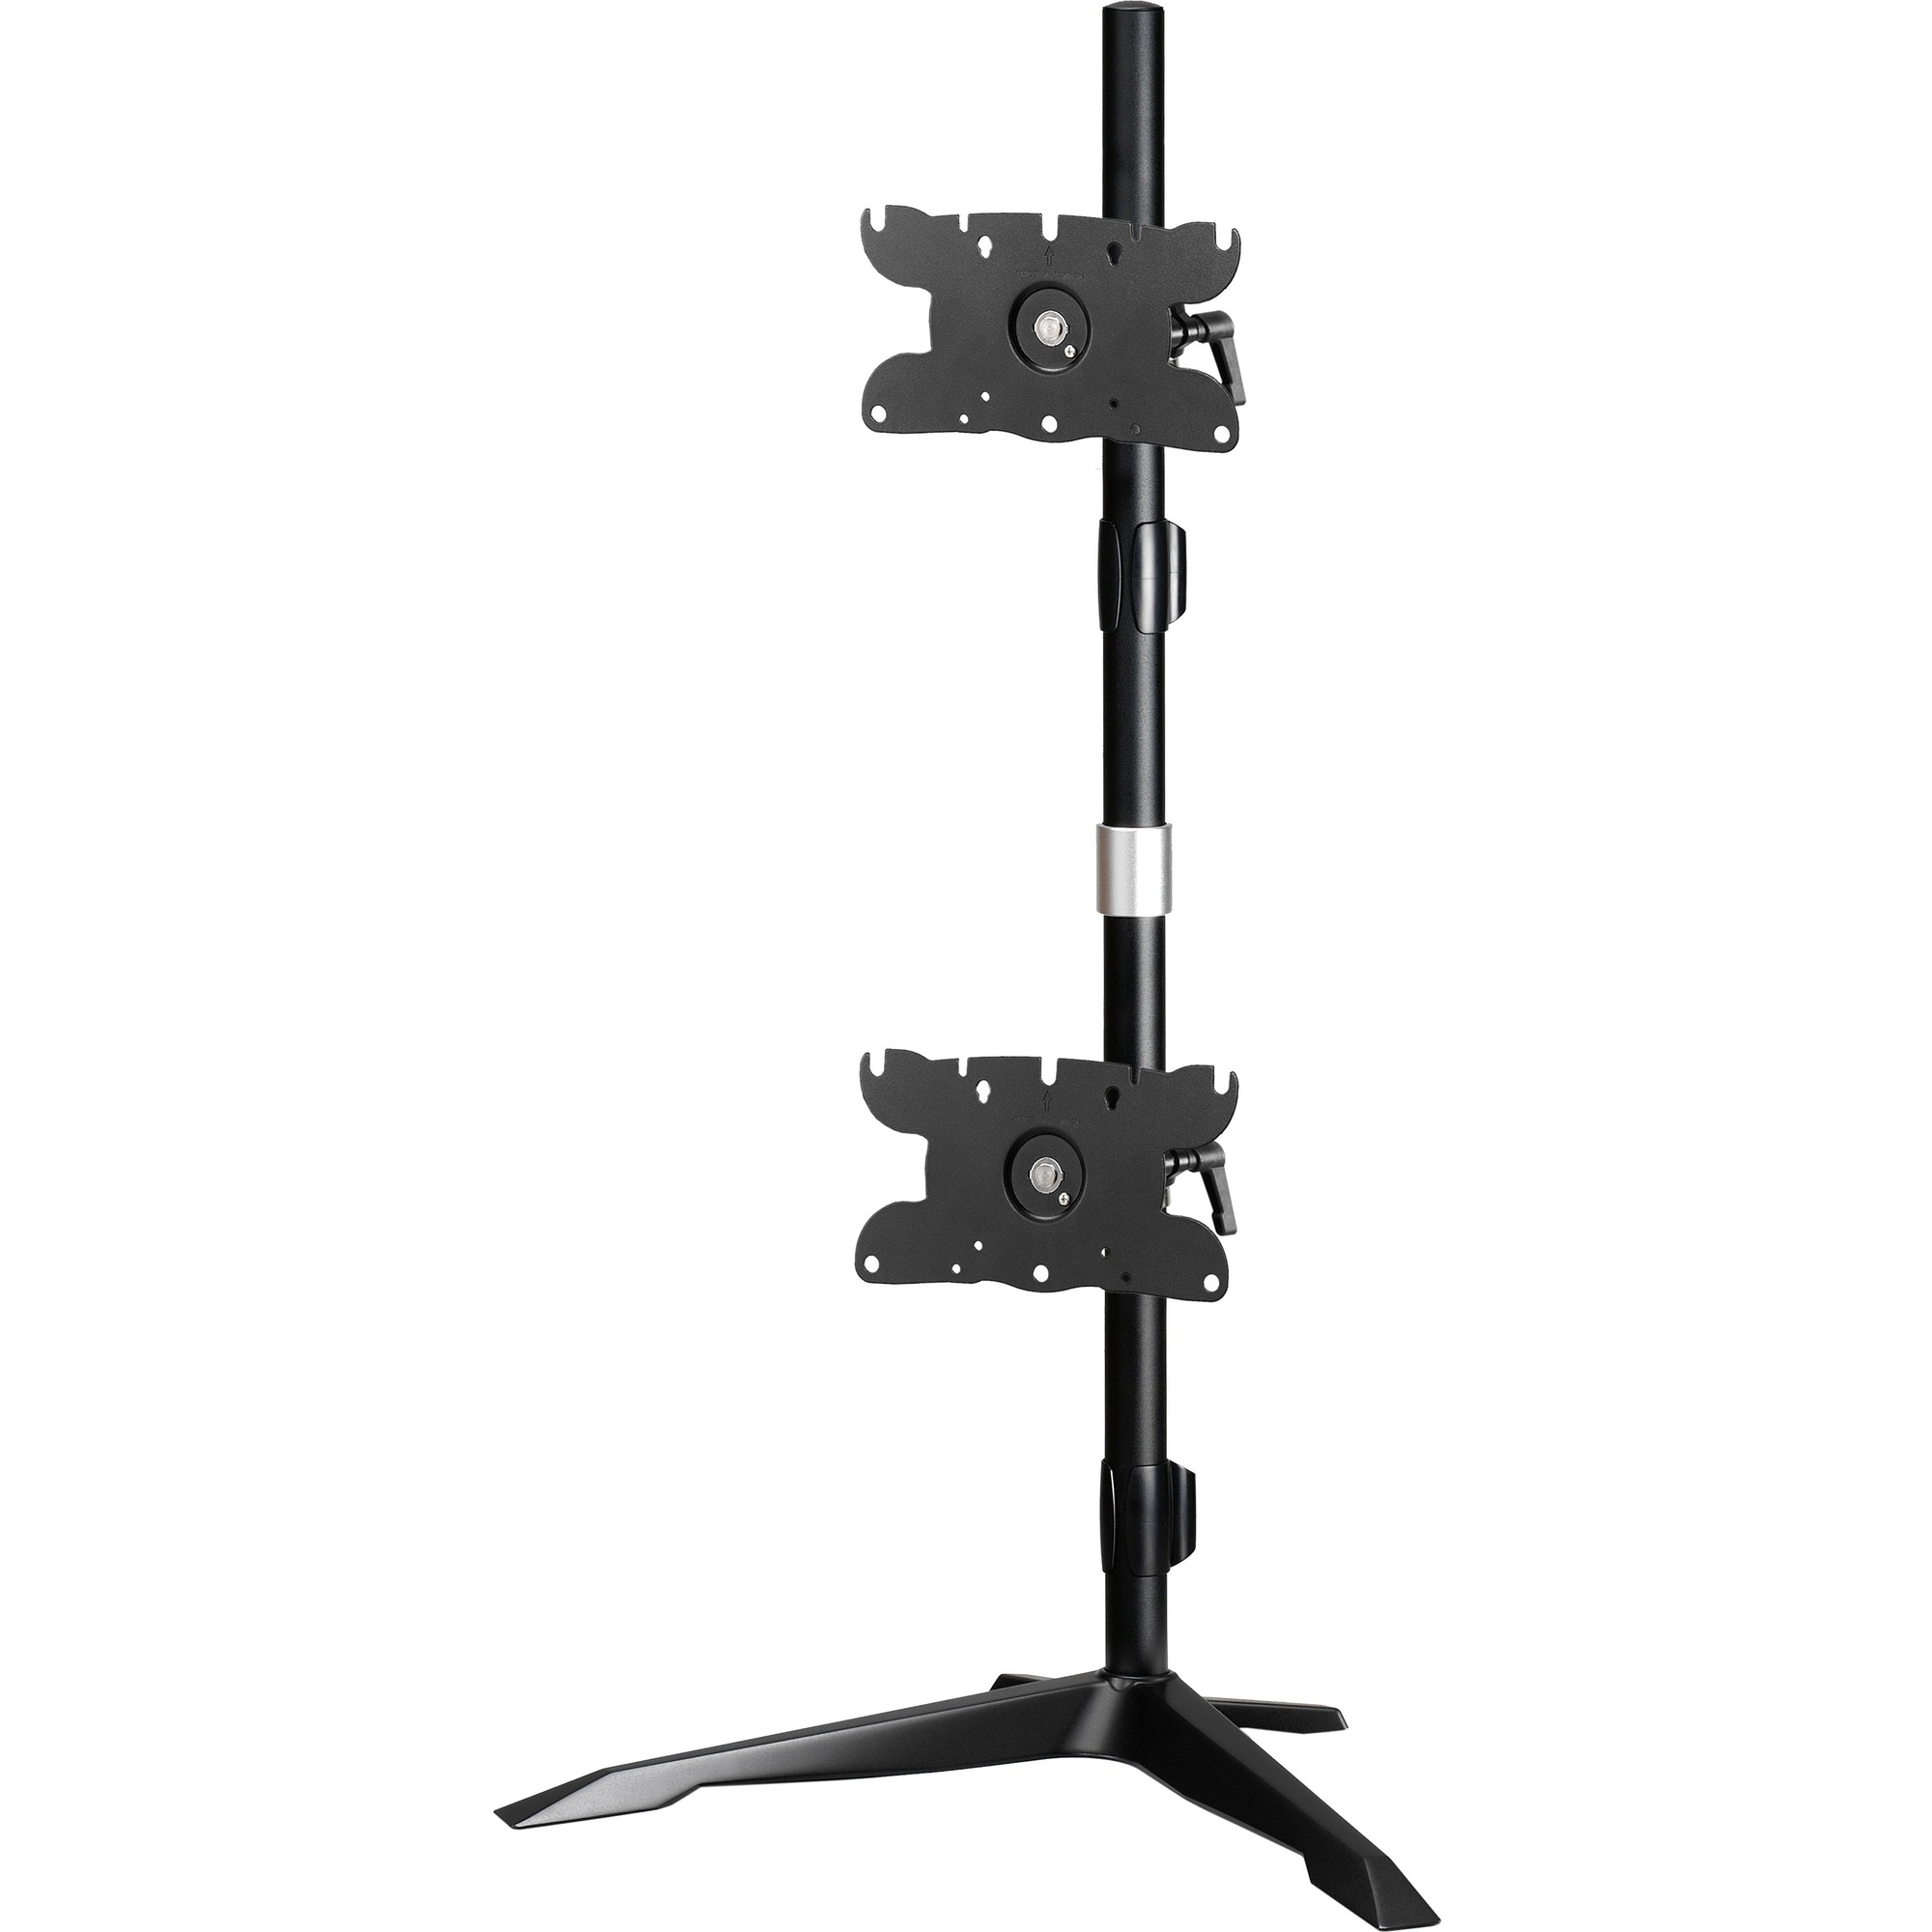 Amer Vertical Display Stand - Up to 32inch Screen Support